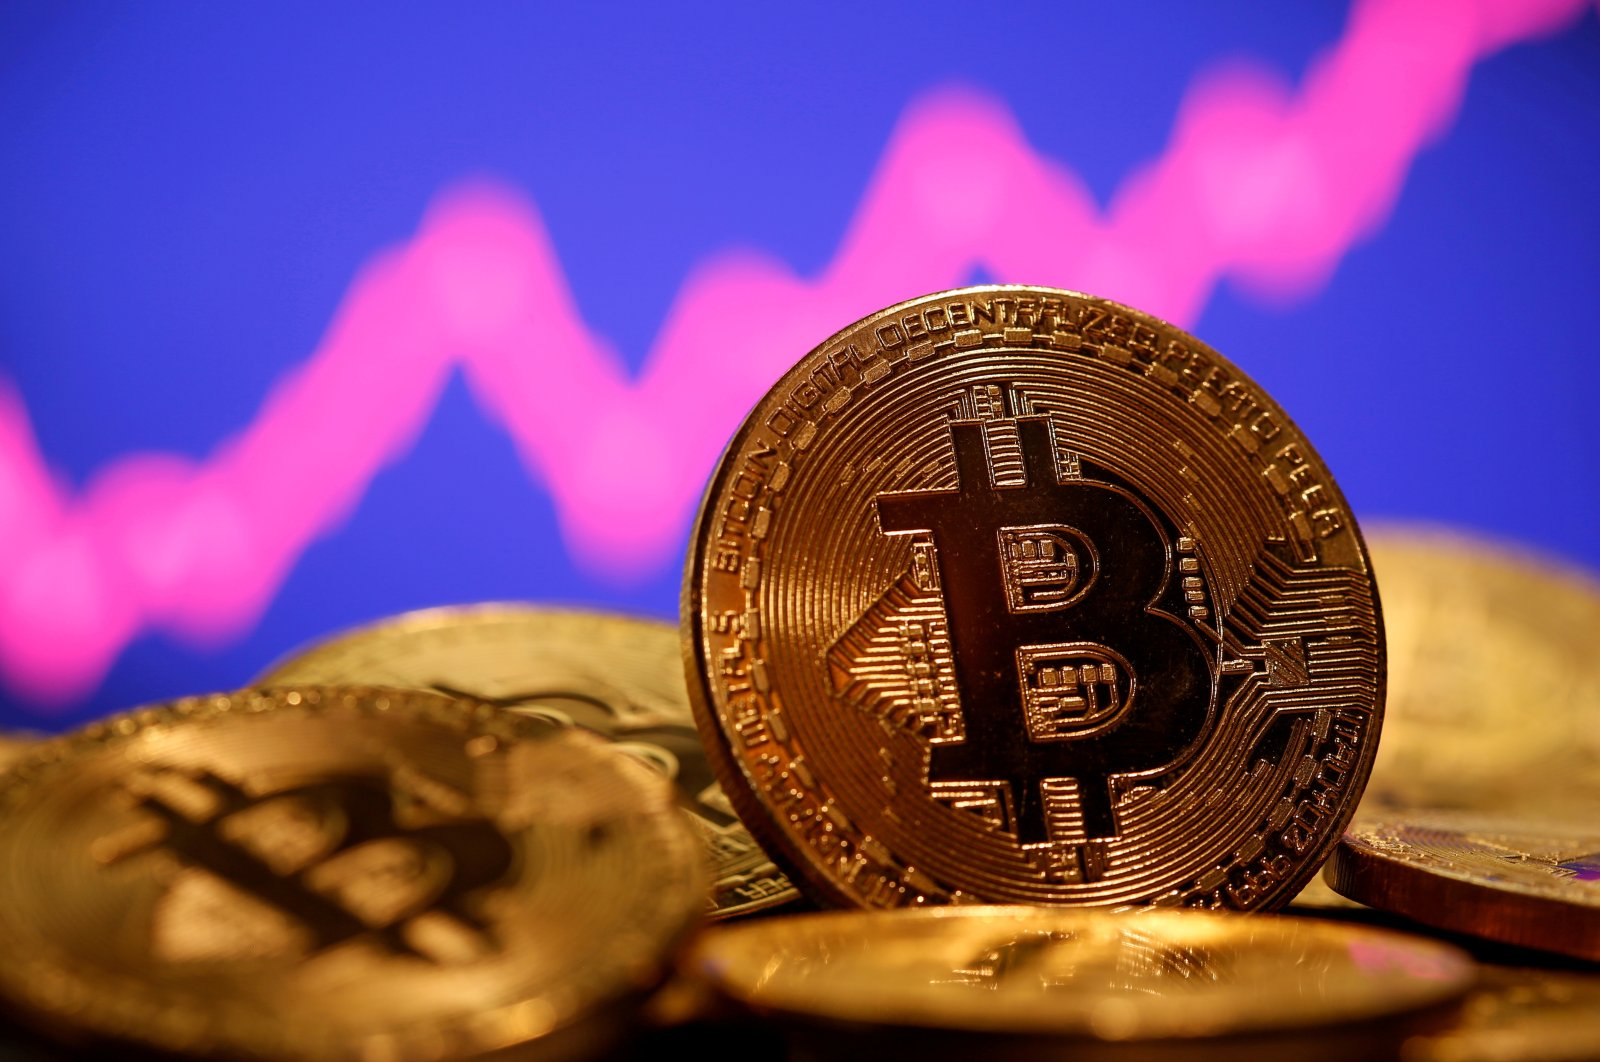 A representation of virtual currency Bitcoin is seen in front of a stock graph in this illustration taken on Jan. 8, 2021. (Reuters Photo)